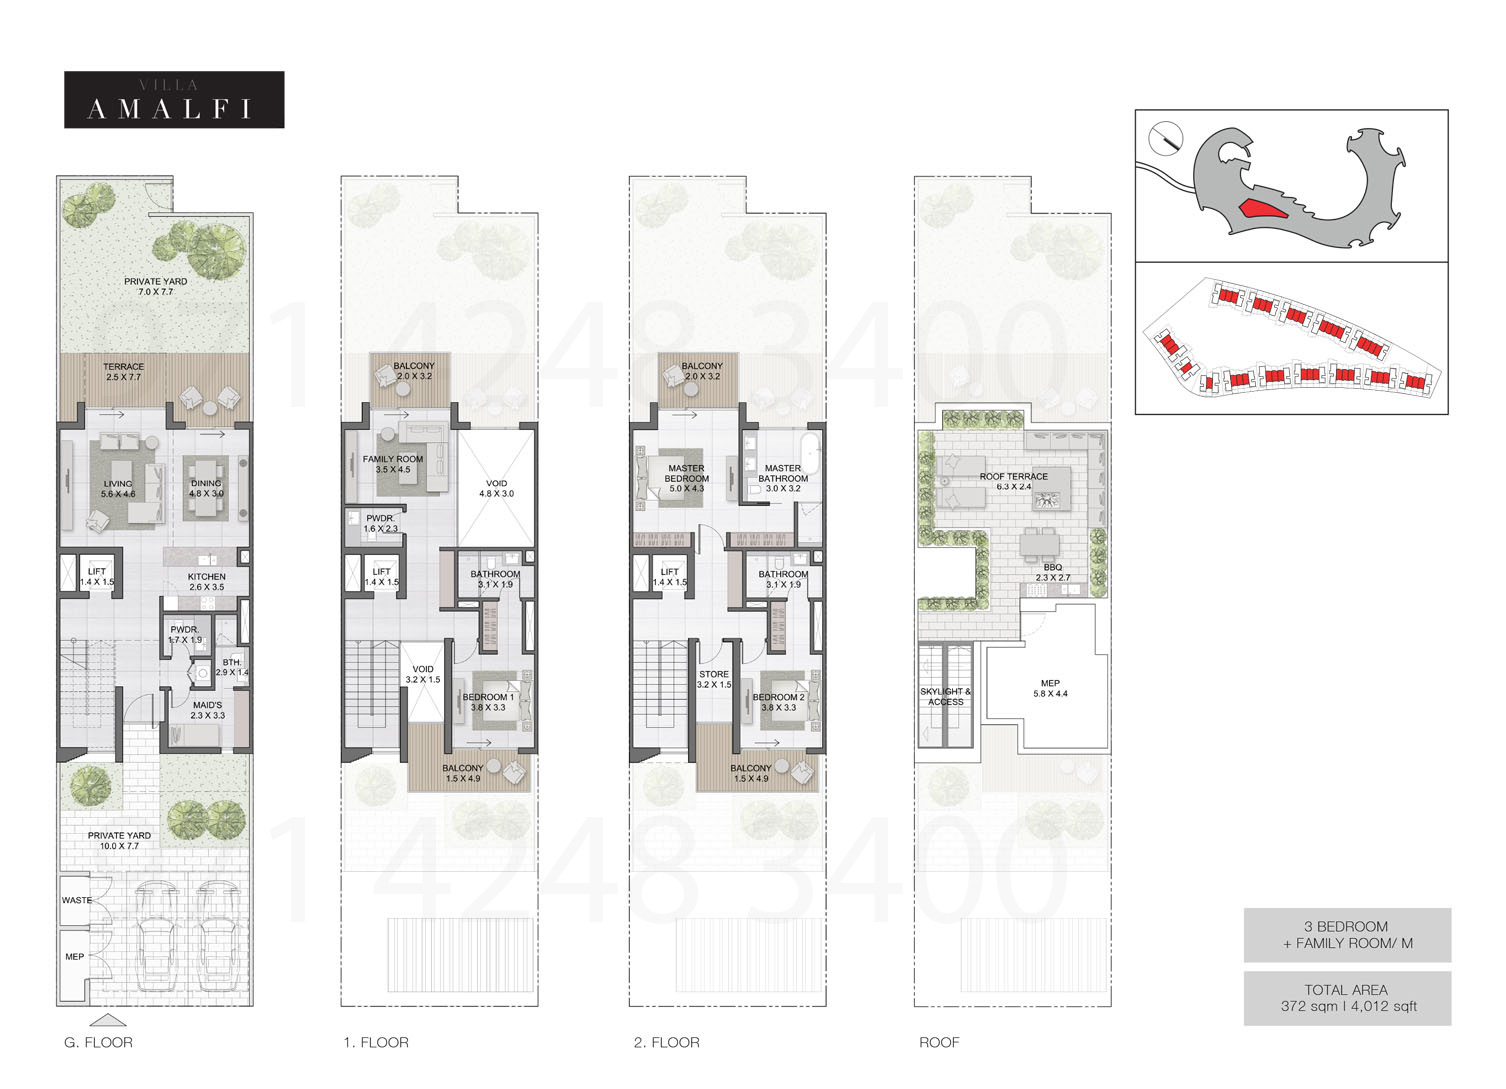 Bedroom 3 Villas, Sizes from 4,012 sq.ft